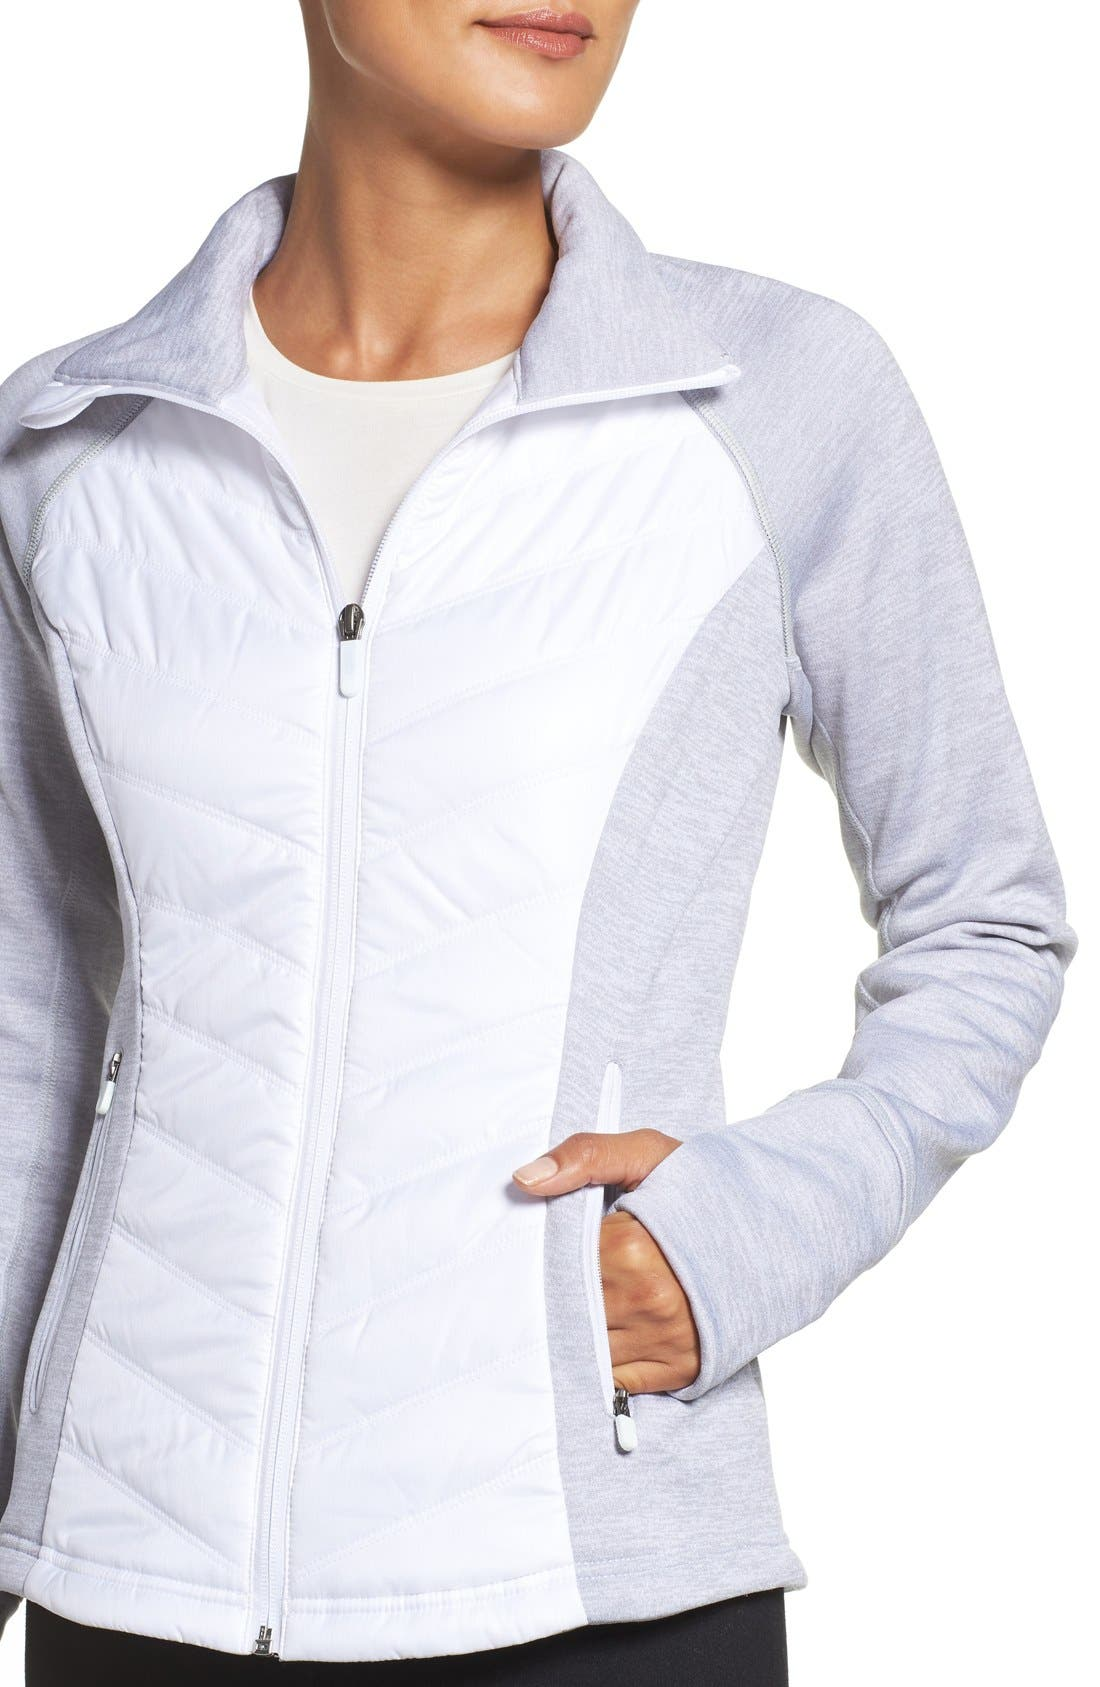 Zelfusion Reflective Quilted Jacket,                             Alternate thumbnail 16, color,